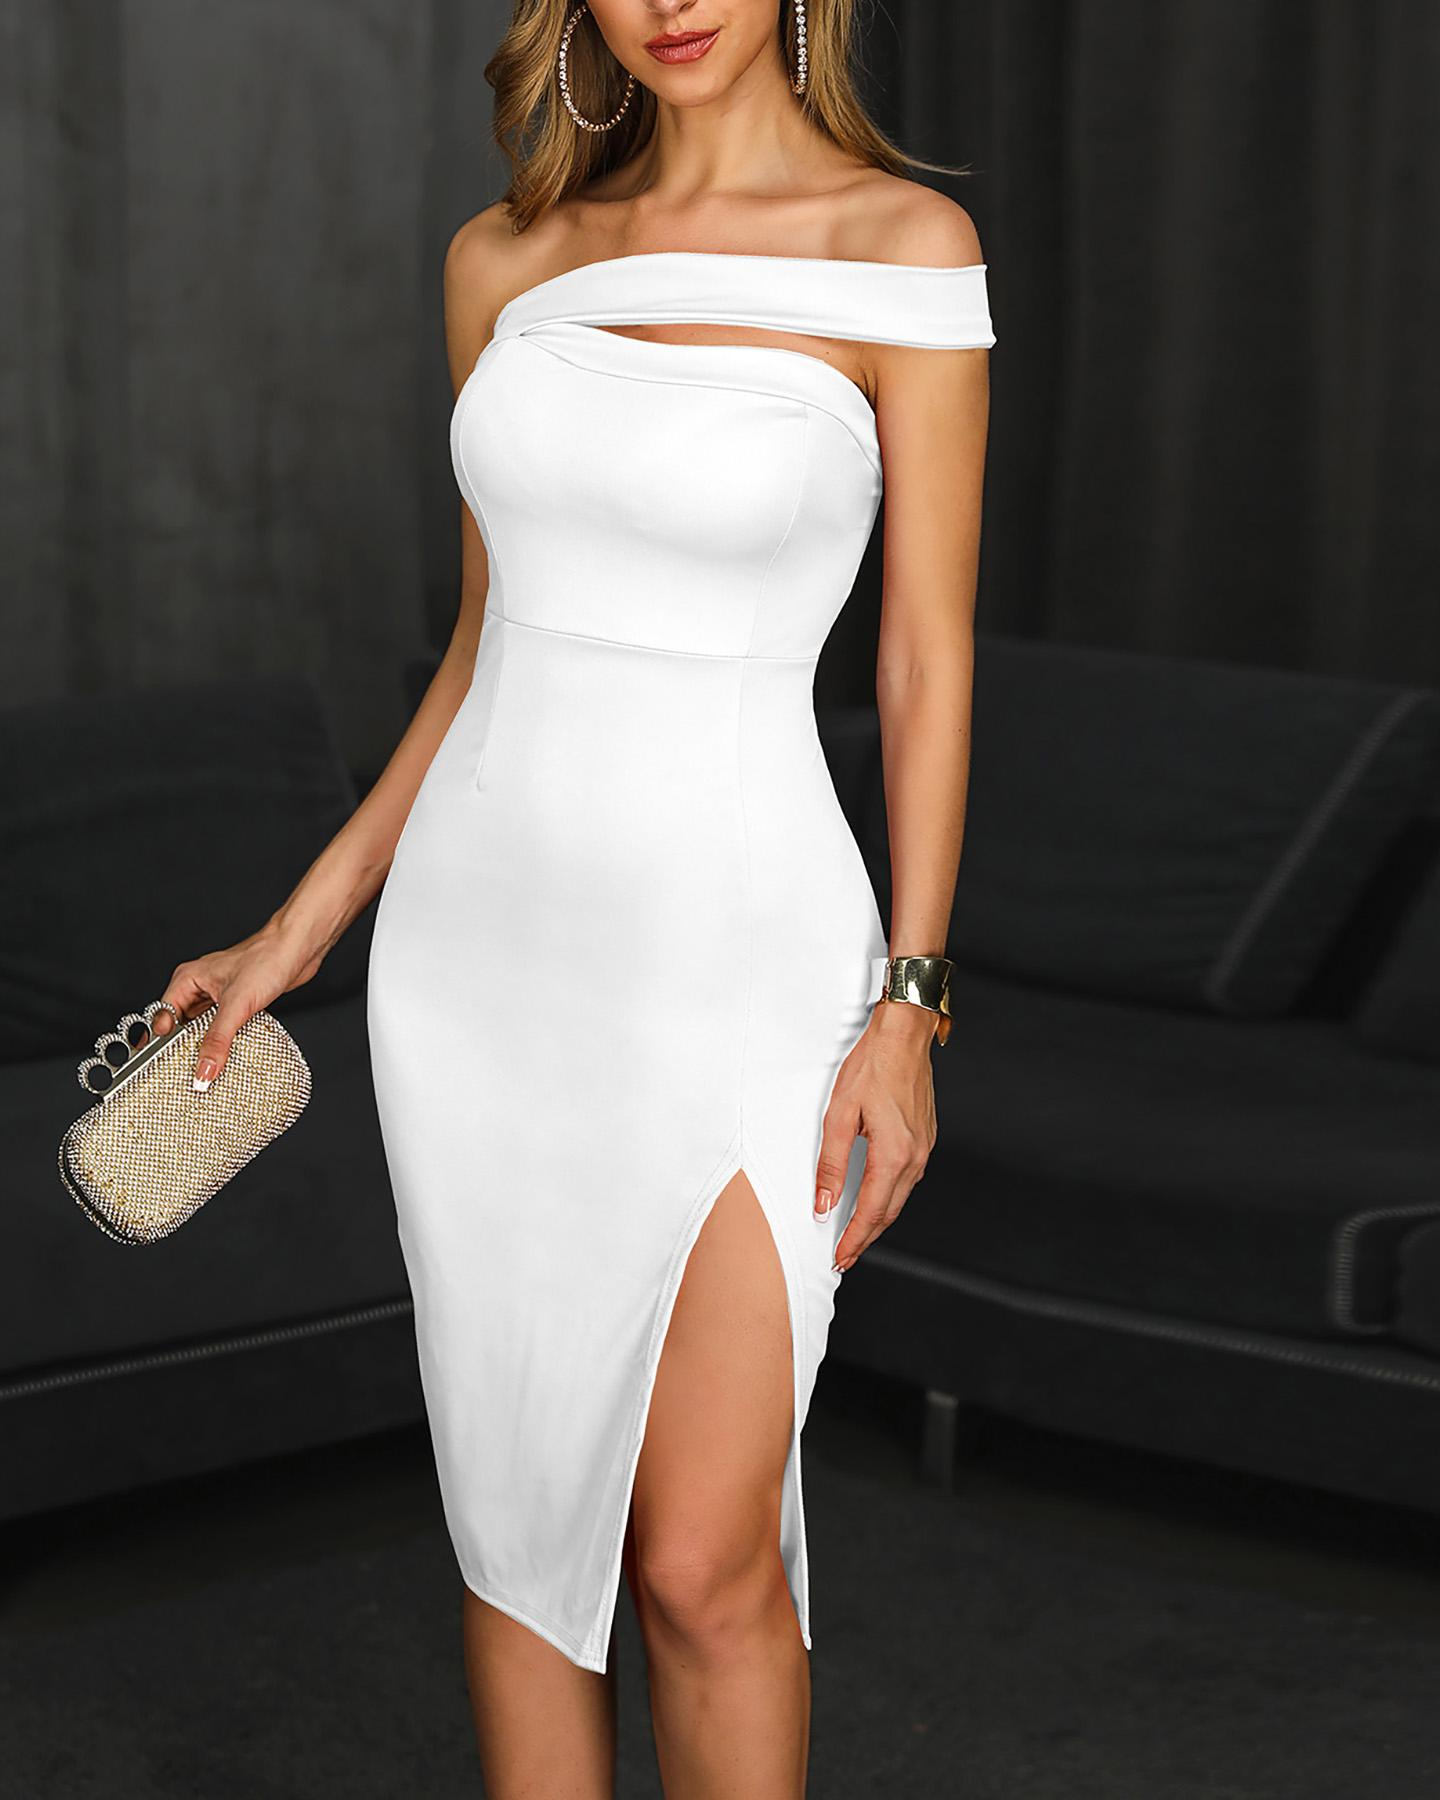 ivrose / One Shoulder Slit Party Dress